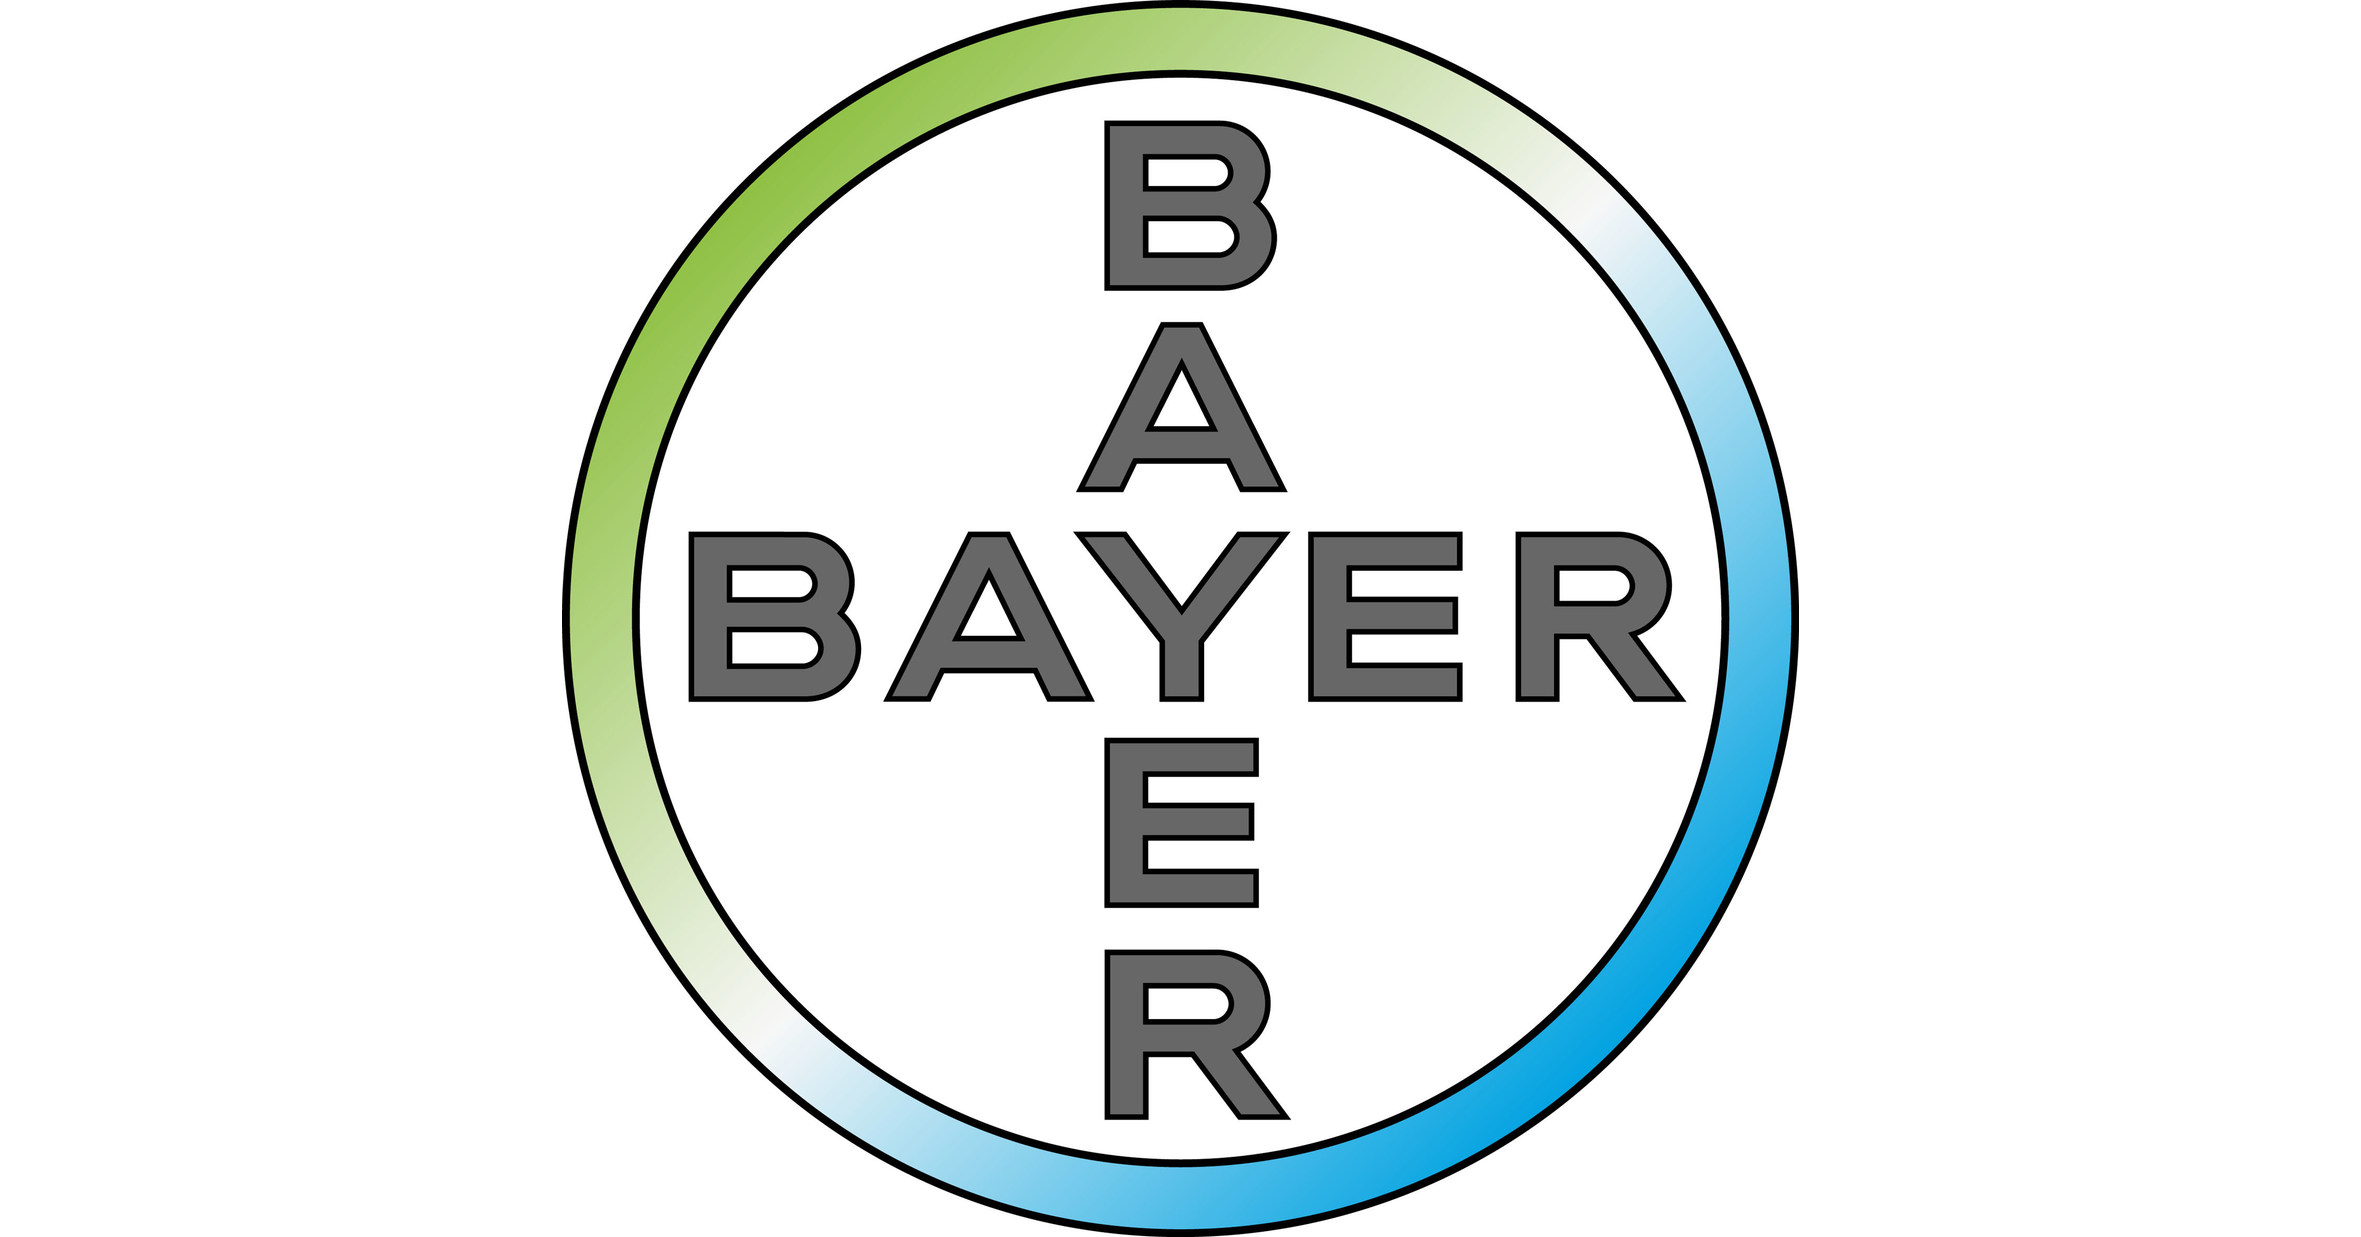 Bayer_Corporation_LOGO.jpg